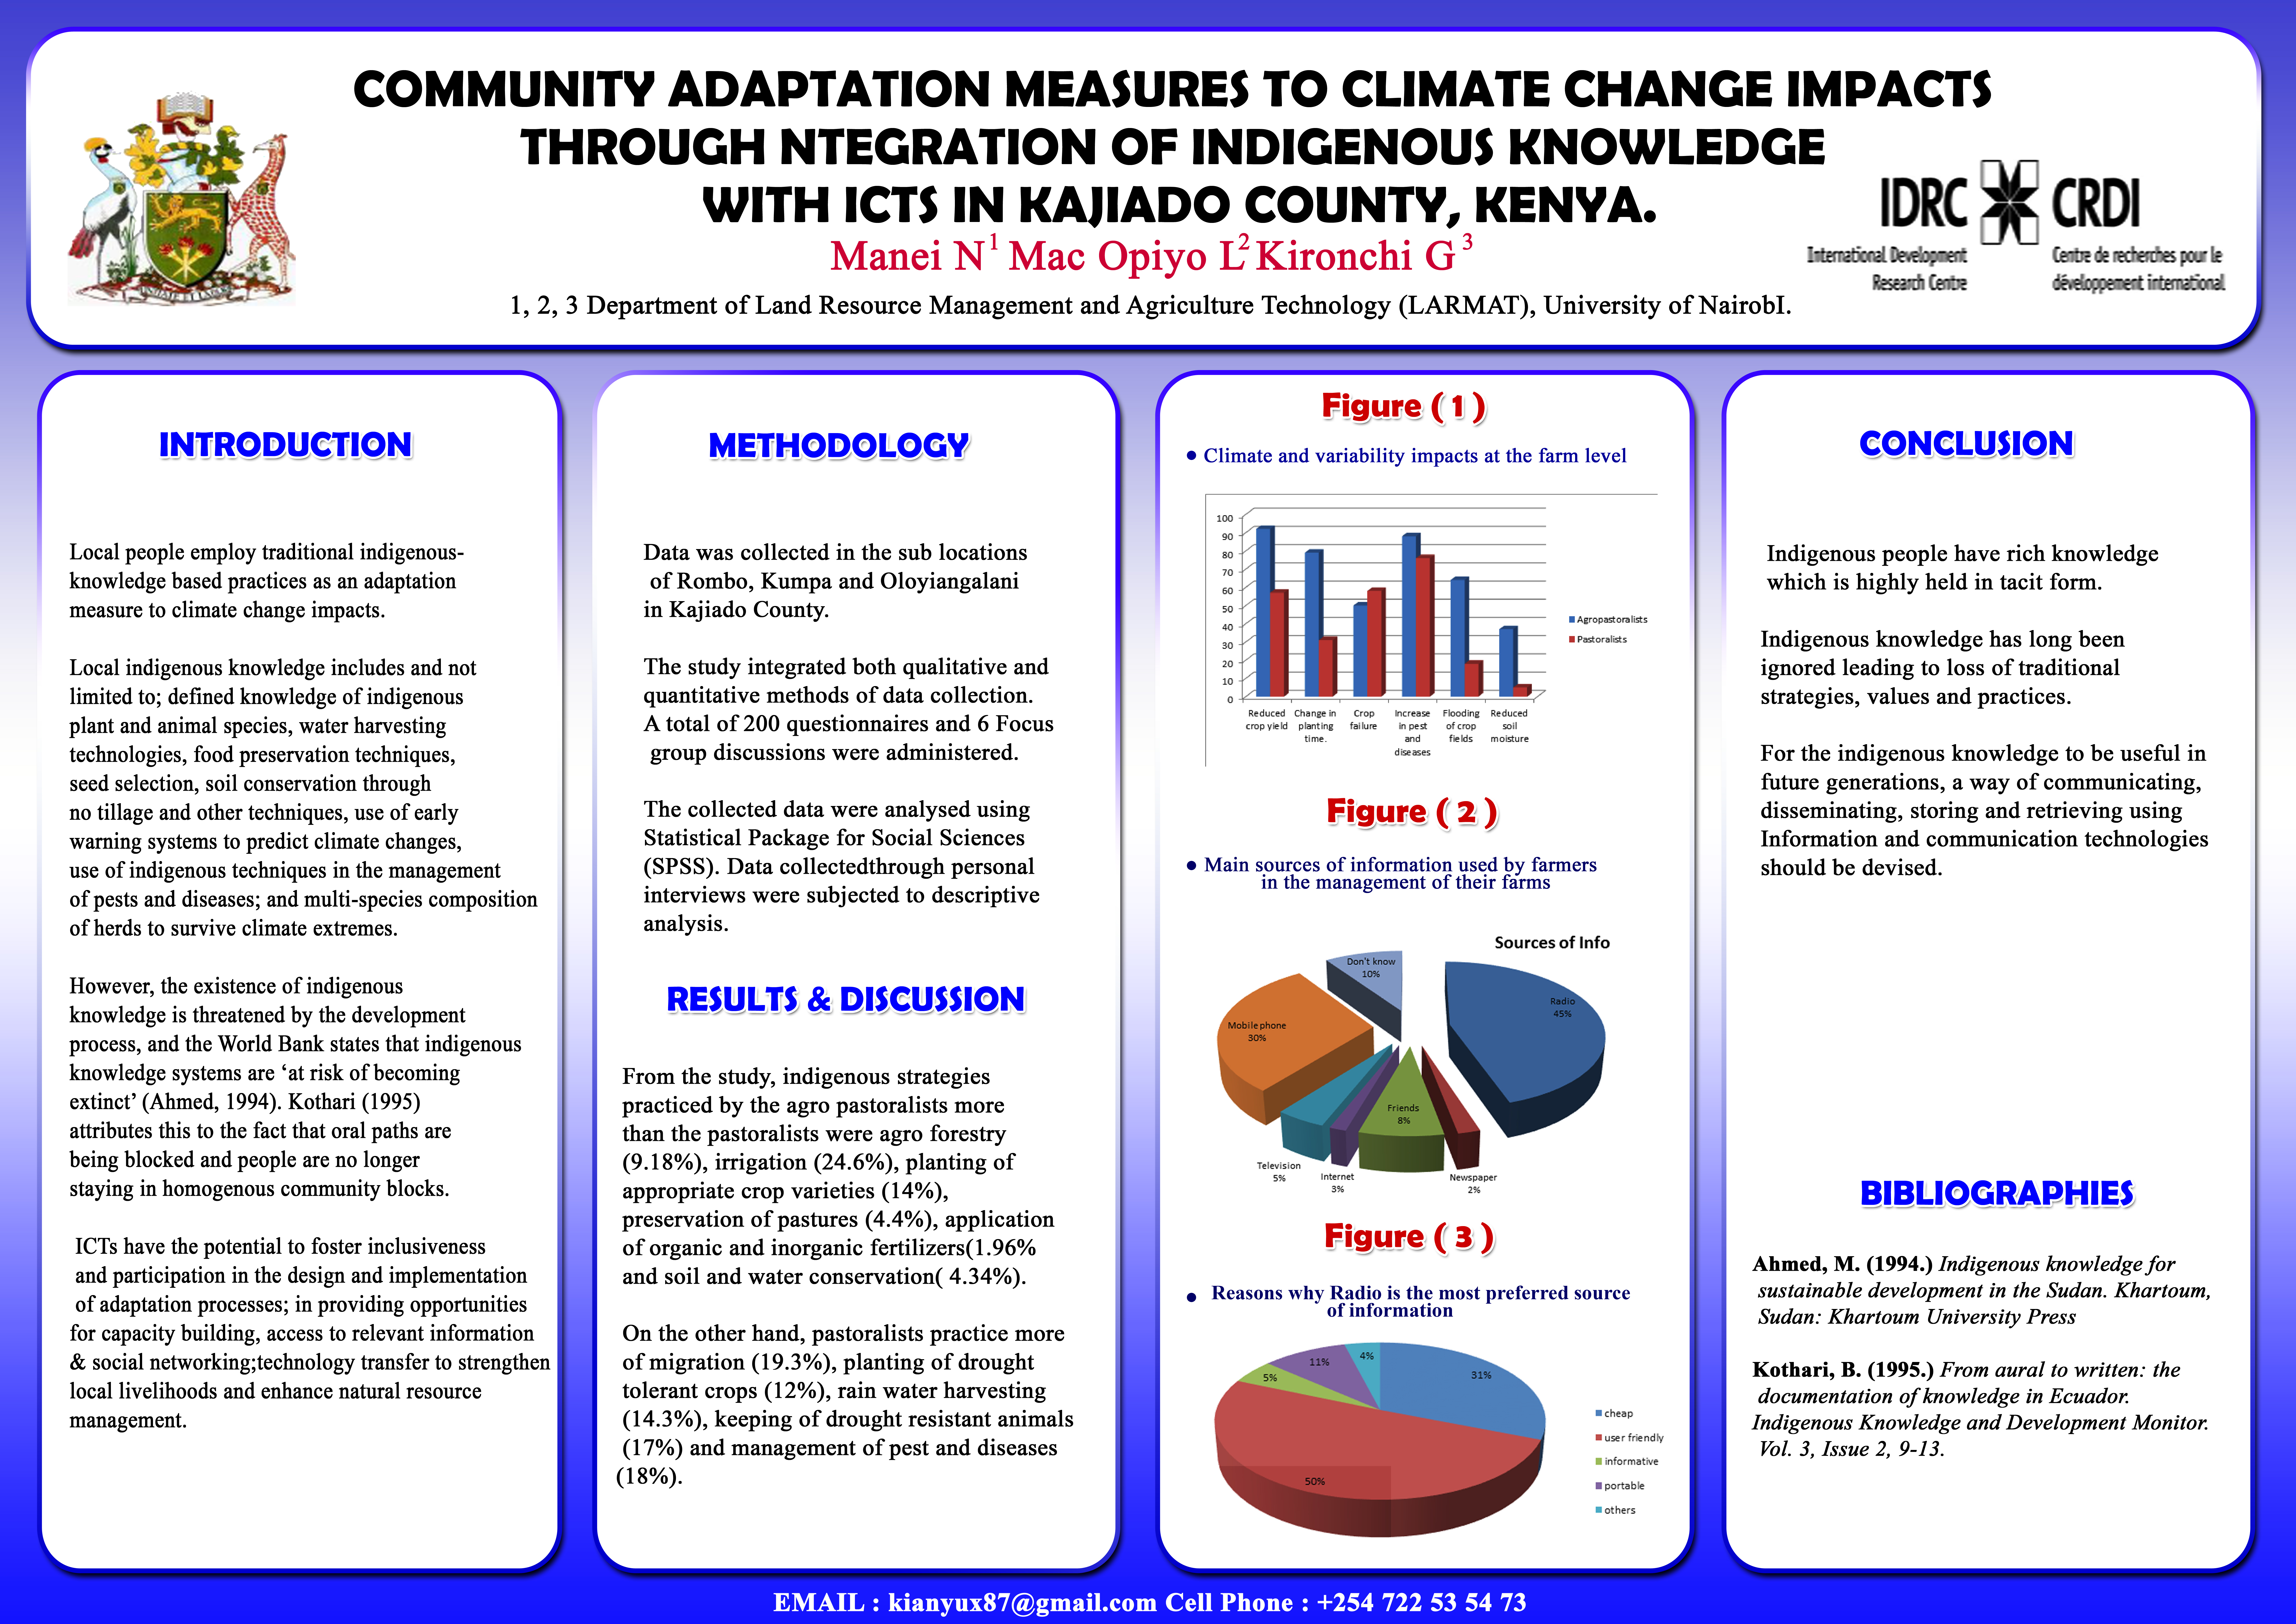 poster by manei 0 - climate adaptation.